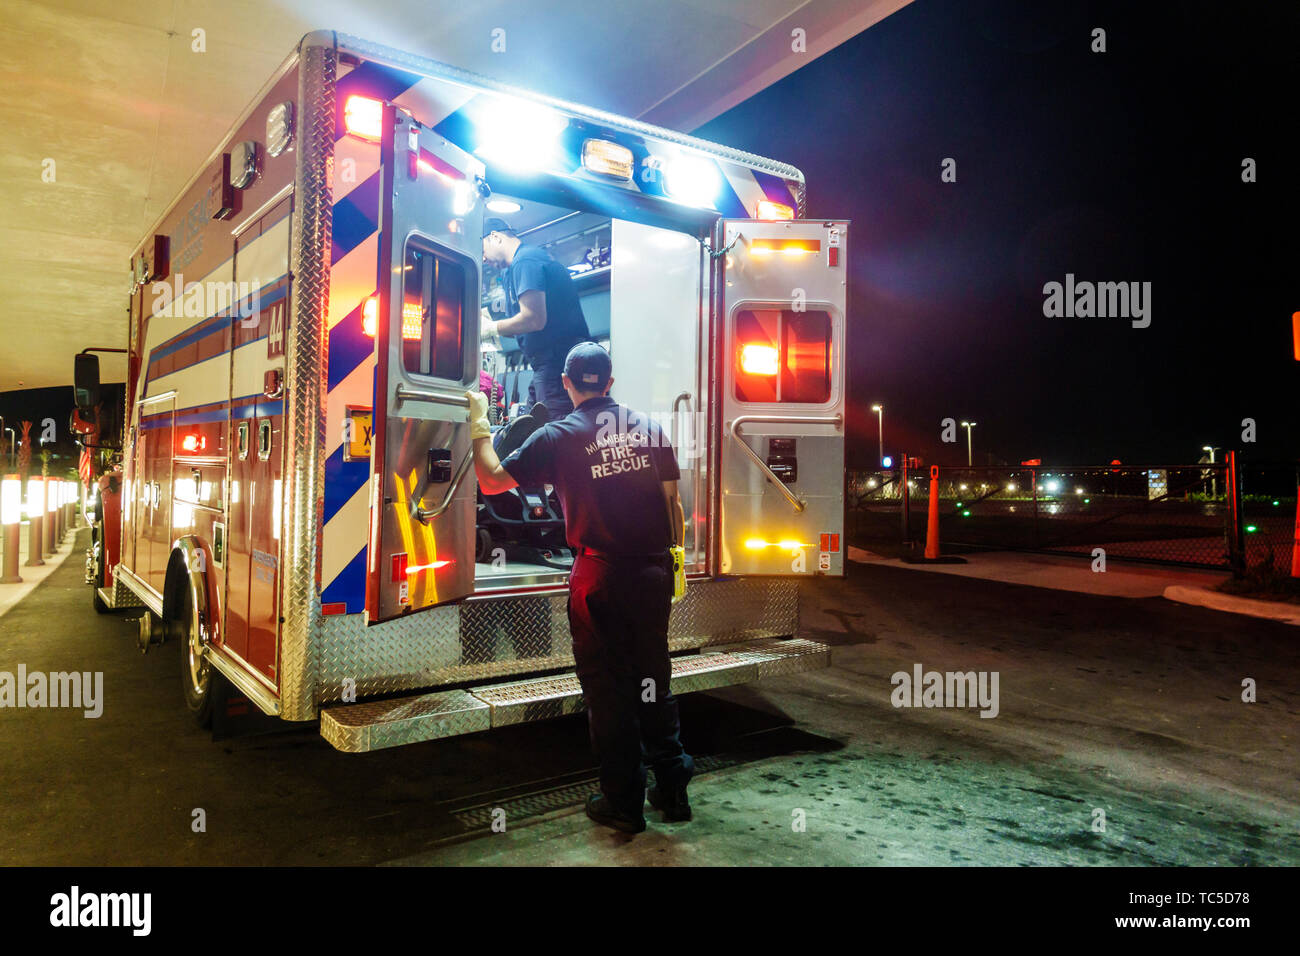 Miami Beach Florida Mount Mt. Sinai Medical Center centre hospital Fire Rescue medical emergency room ambulance vehicle EMT Stock Photo